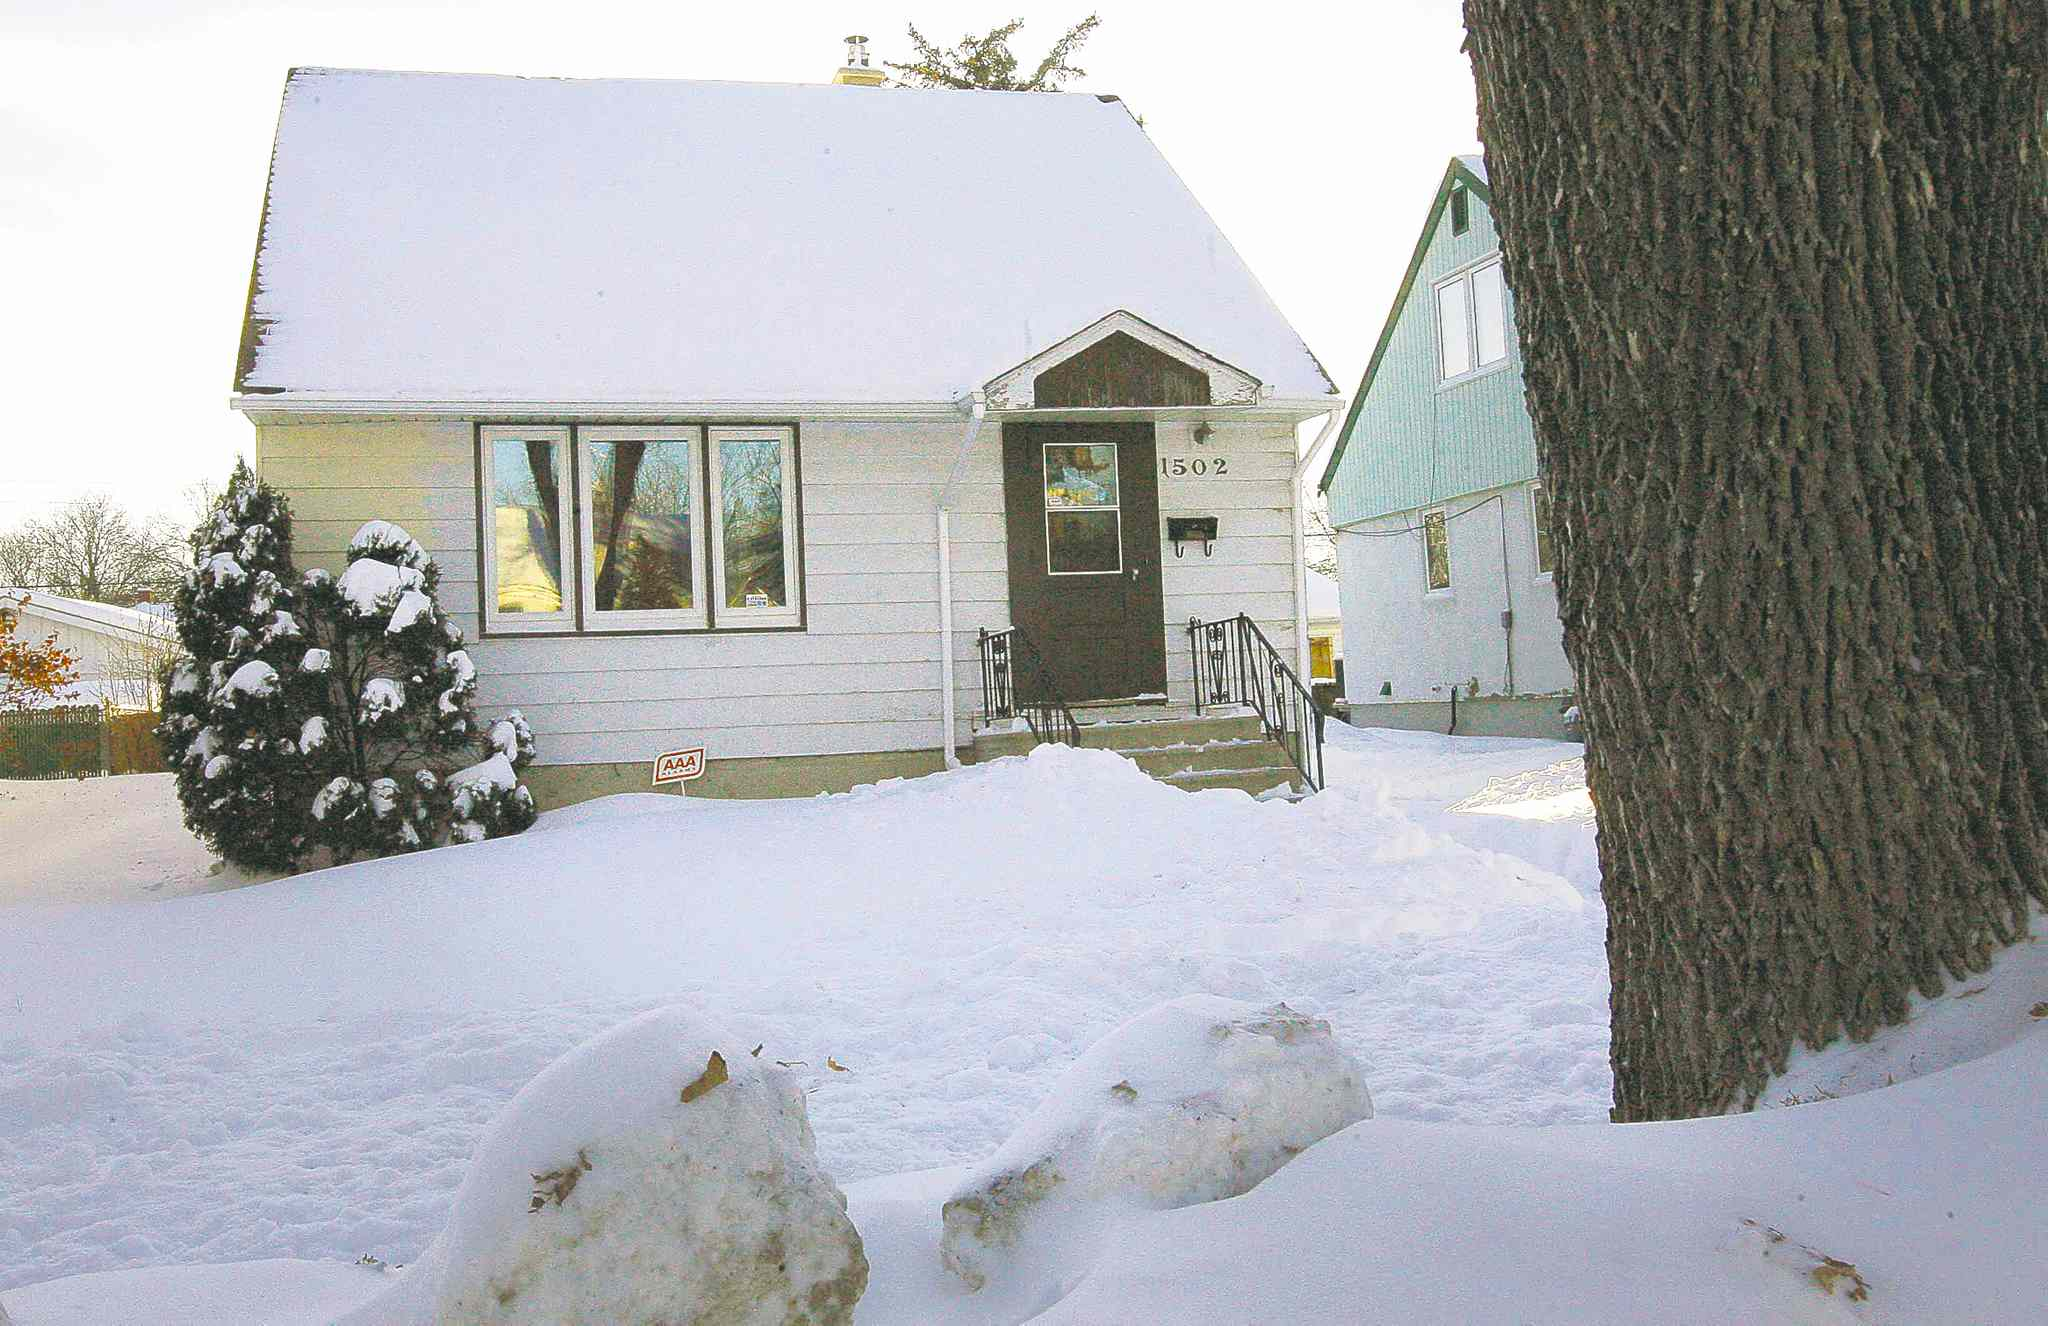 Neighbours of a Manitoba Avenue resident have feared the man because of his bizarre behaviour. He was found not criminally responsible for a July 28 outburst in which he stabbed a neighbour.